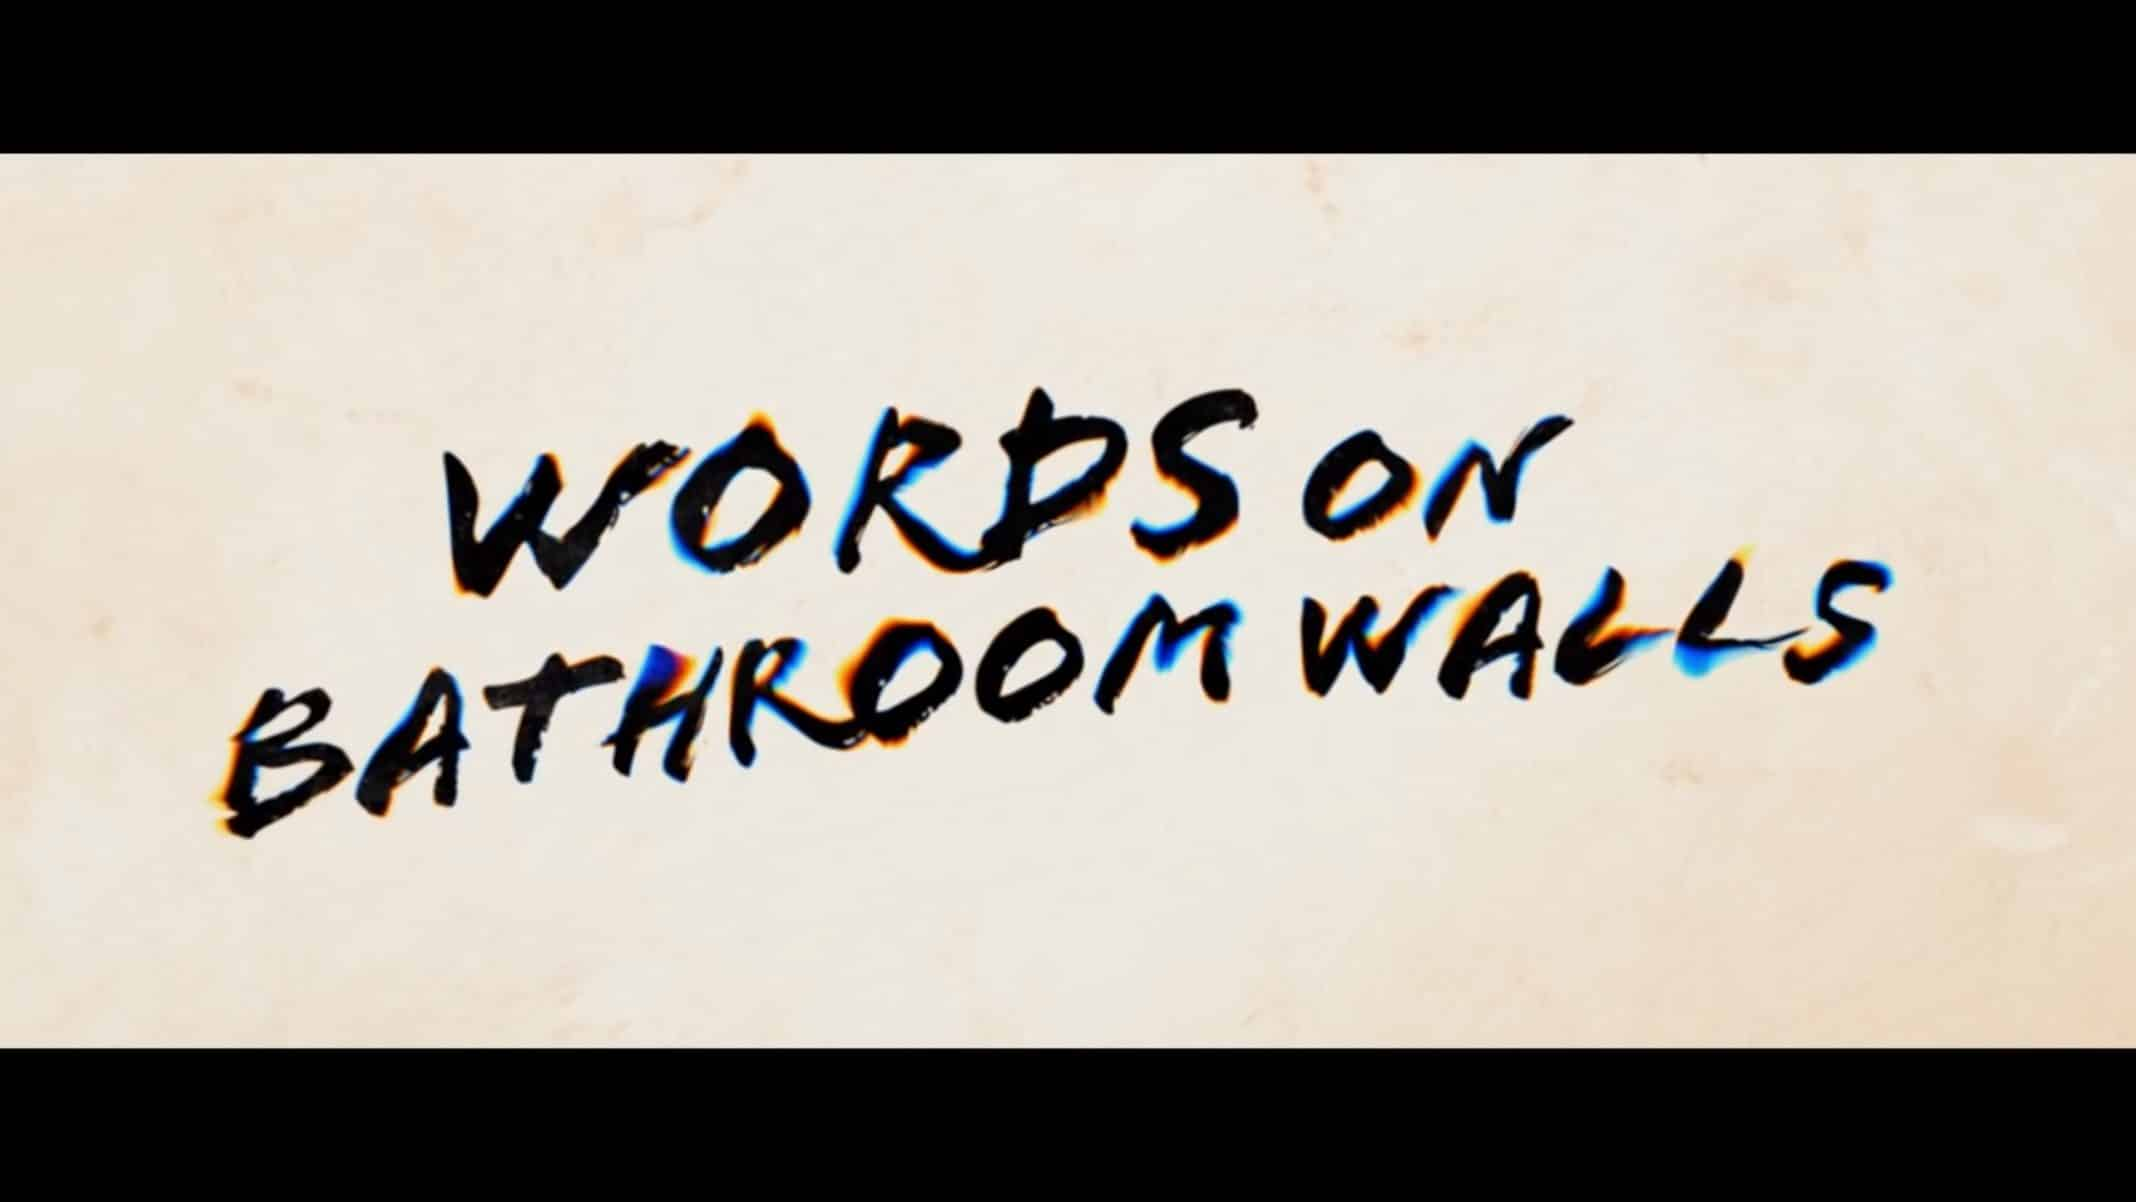 Title Card - Words on Bathroom Walls